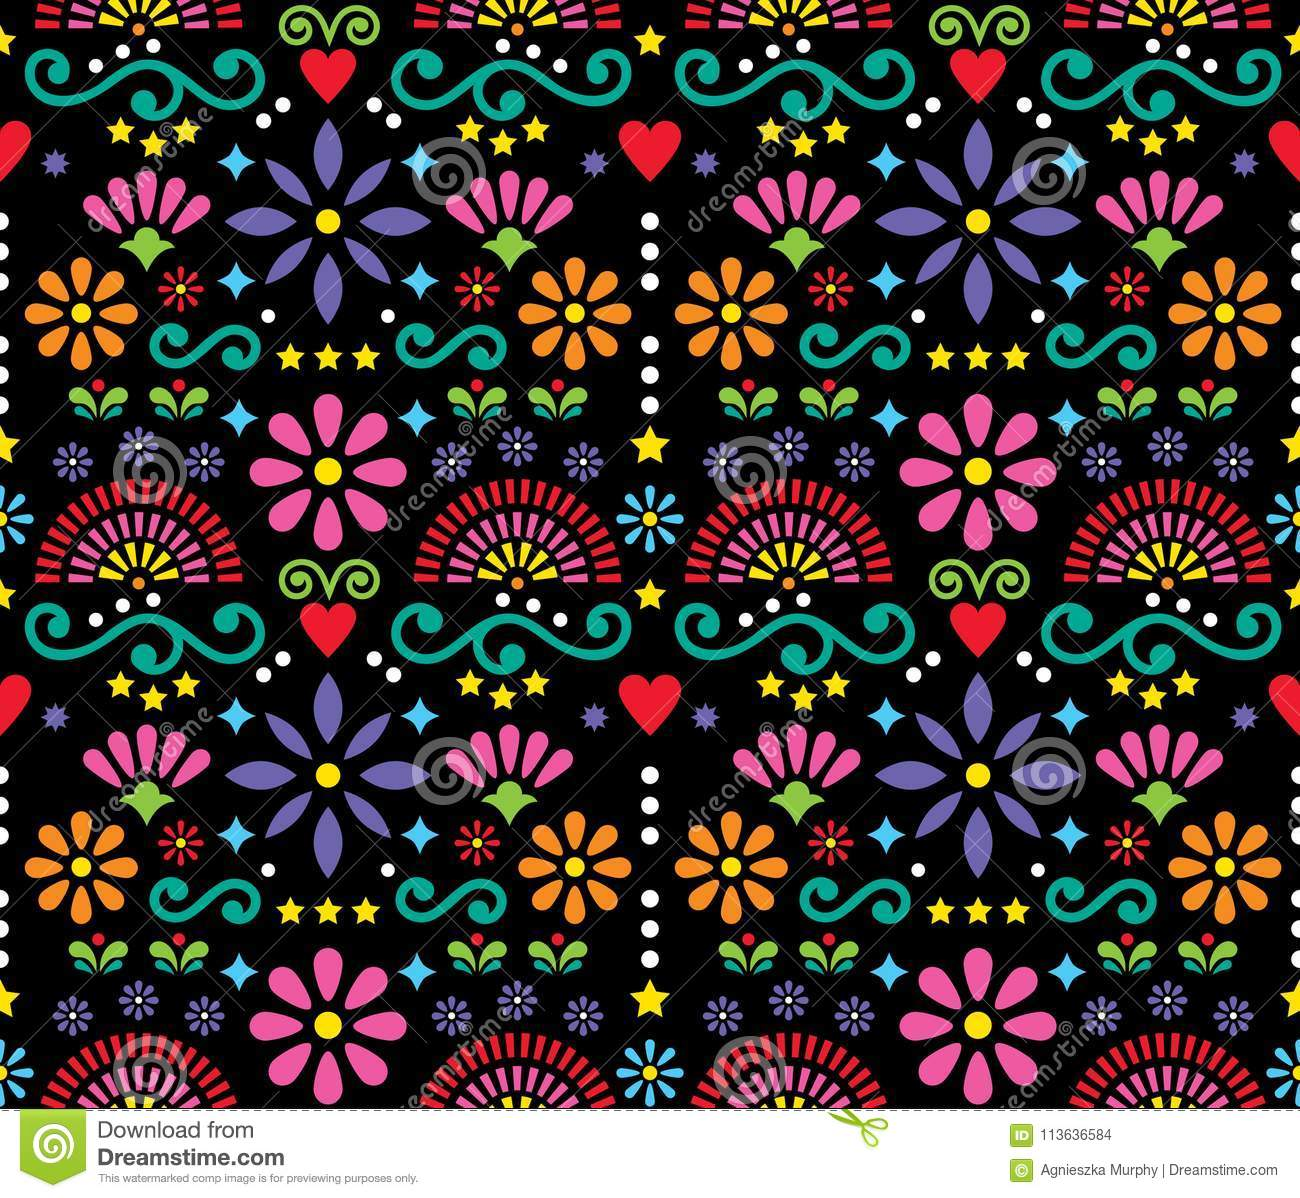 Happy flowers and abstract shapes ornament, retro symmetric background on black